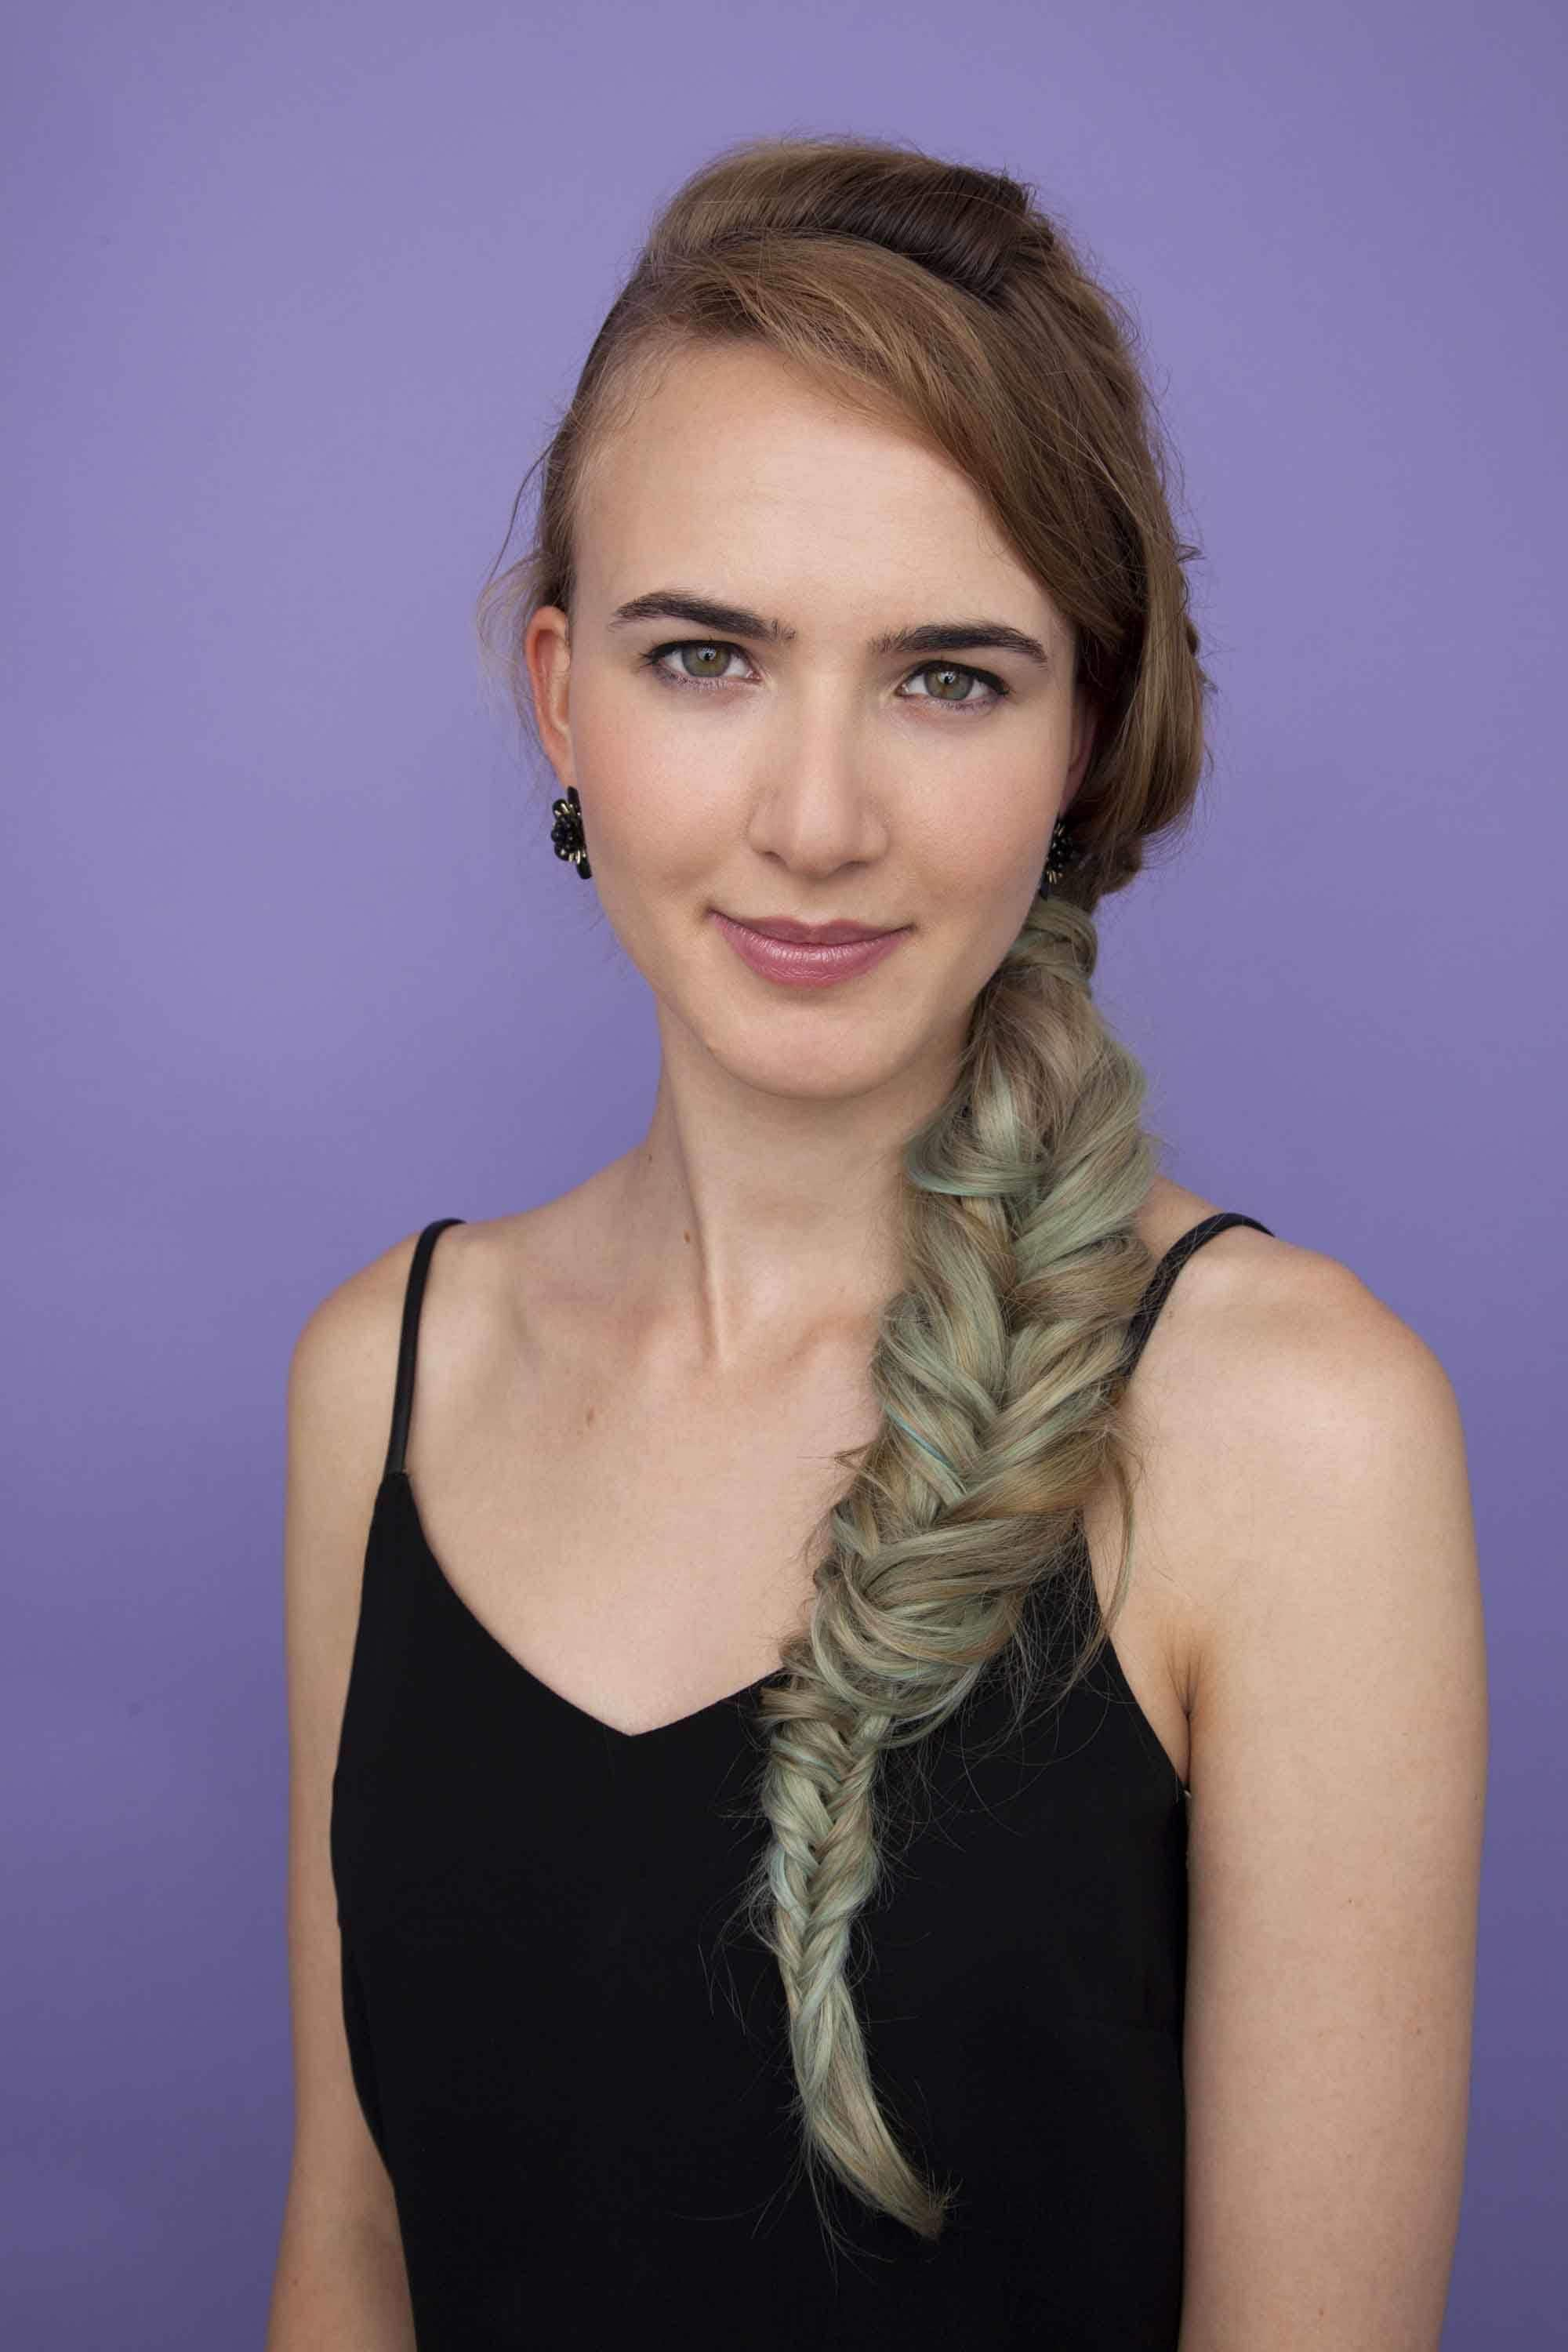 Festival hair: woman with long multi-coloured hair style dina side fishtail braid in studio setting